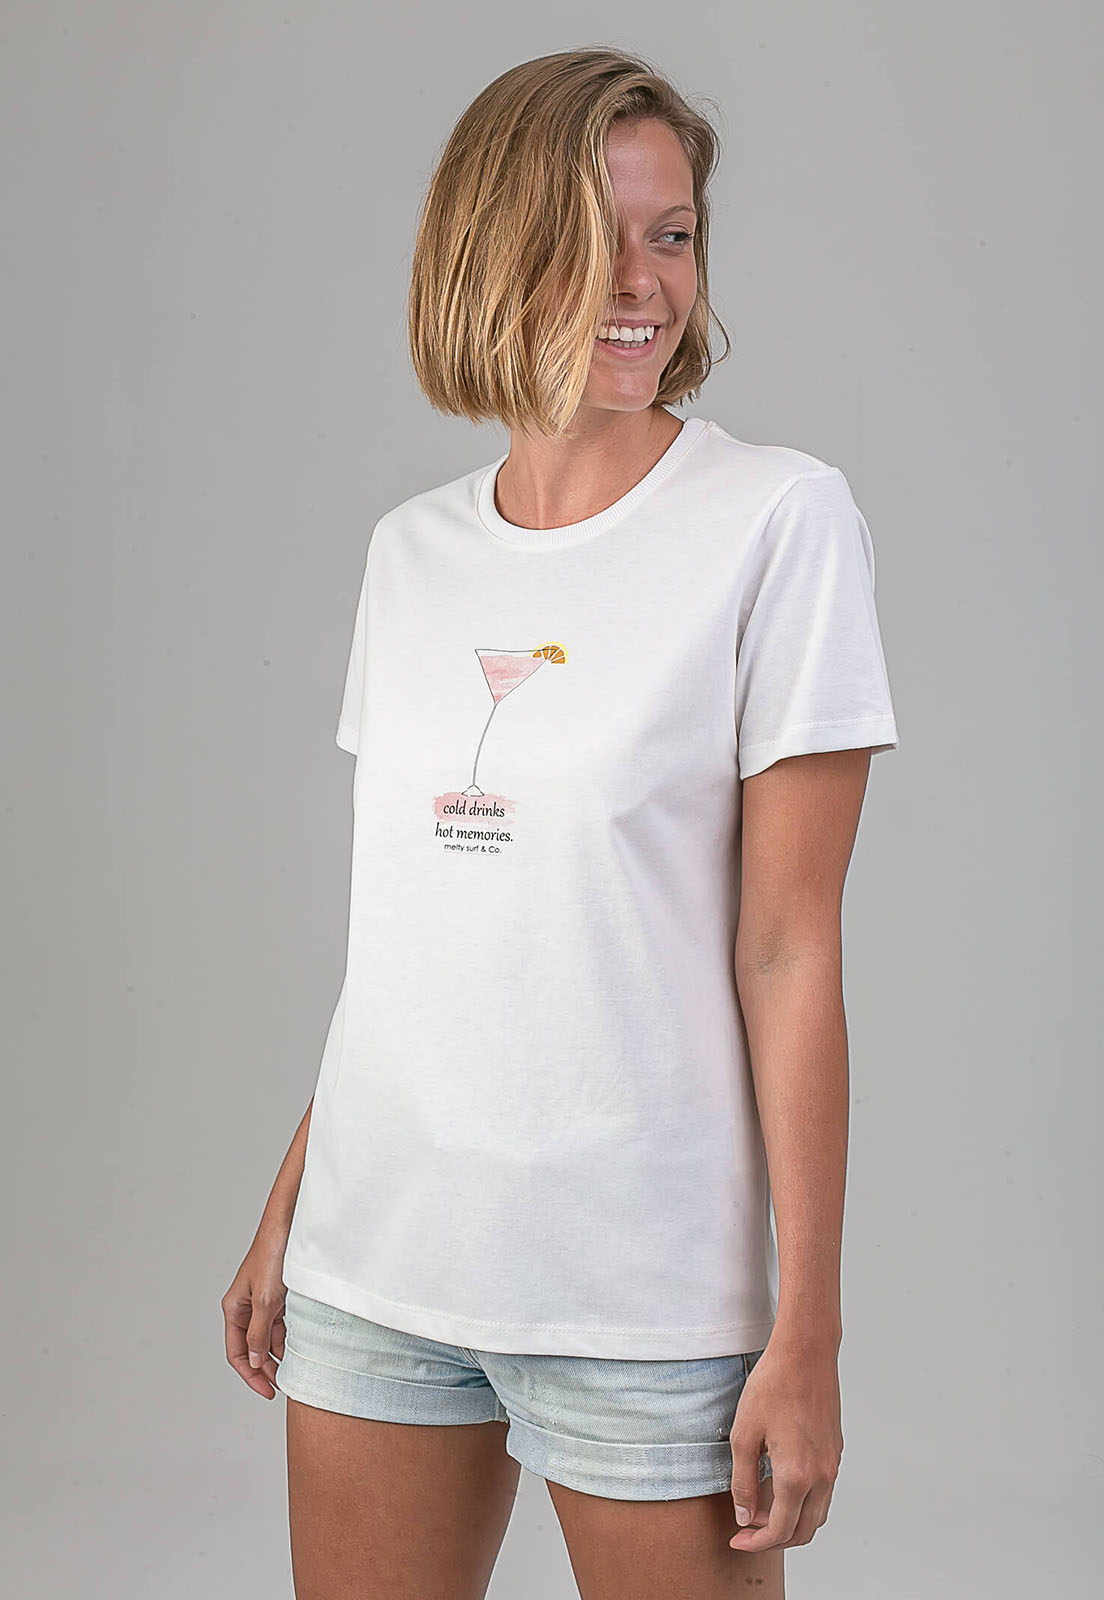 T-shirt Cold Drinks melty